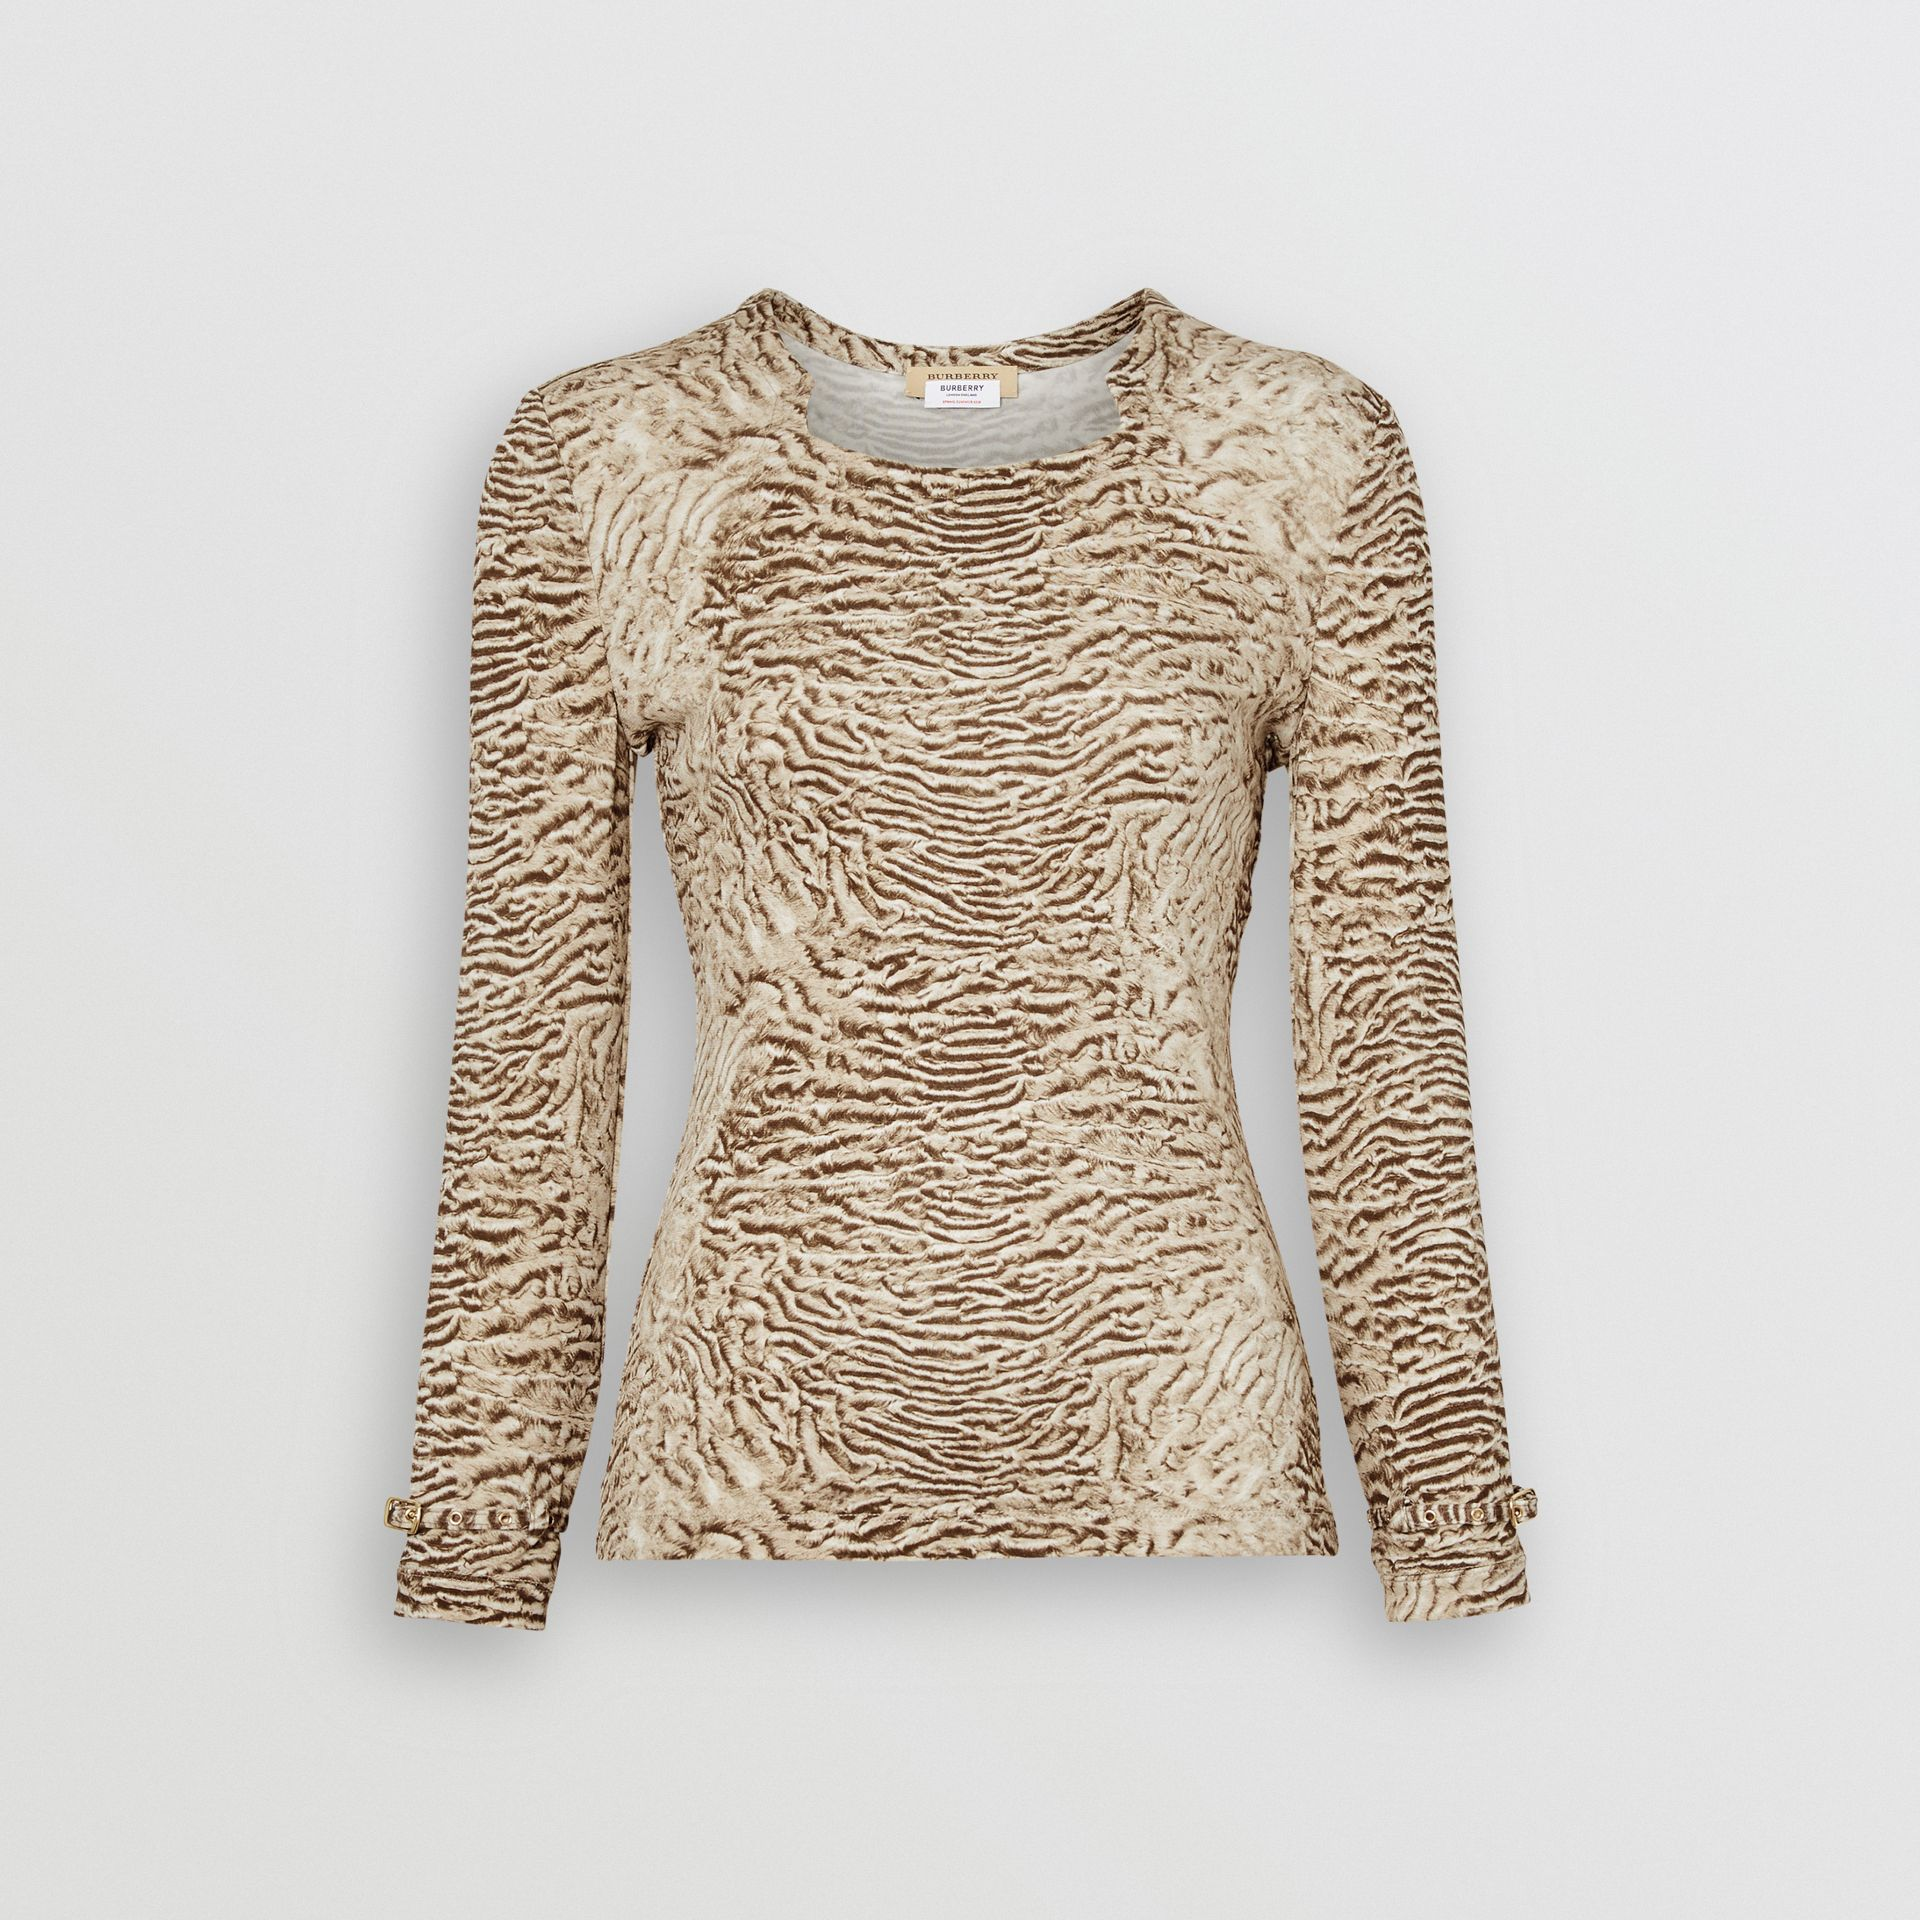 Astrakhan Print Stretch Jersey Top in Pale Taupe - Women | Burberry - gallery image 3